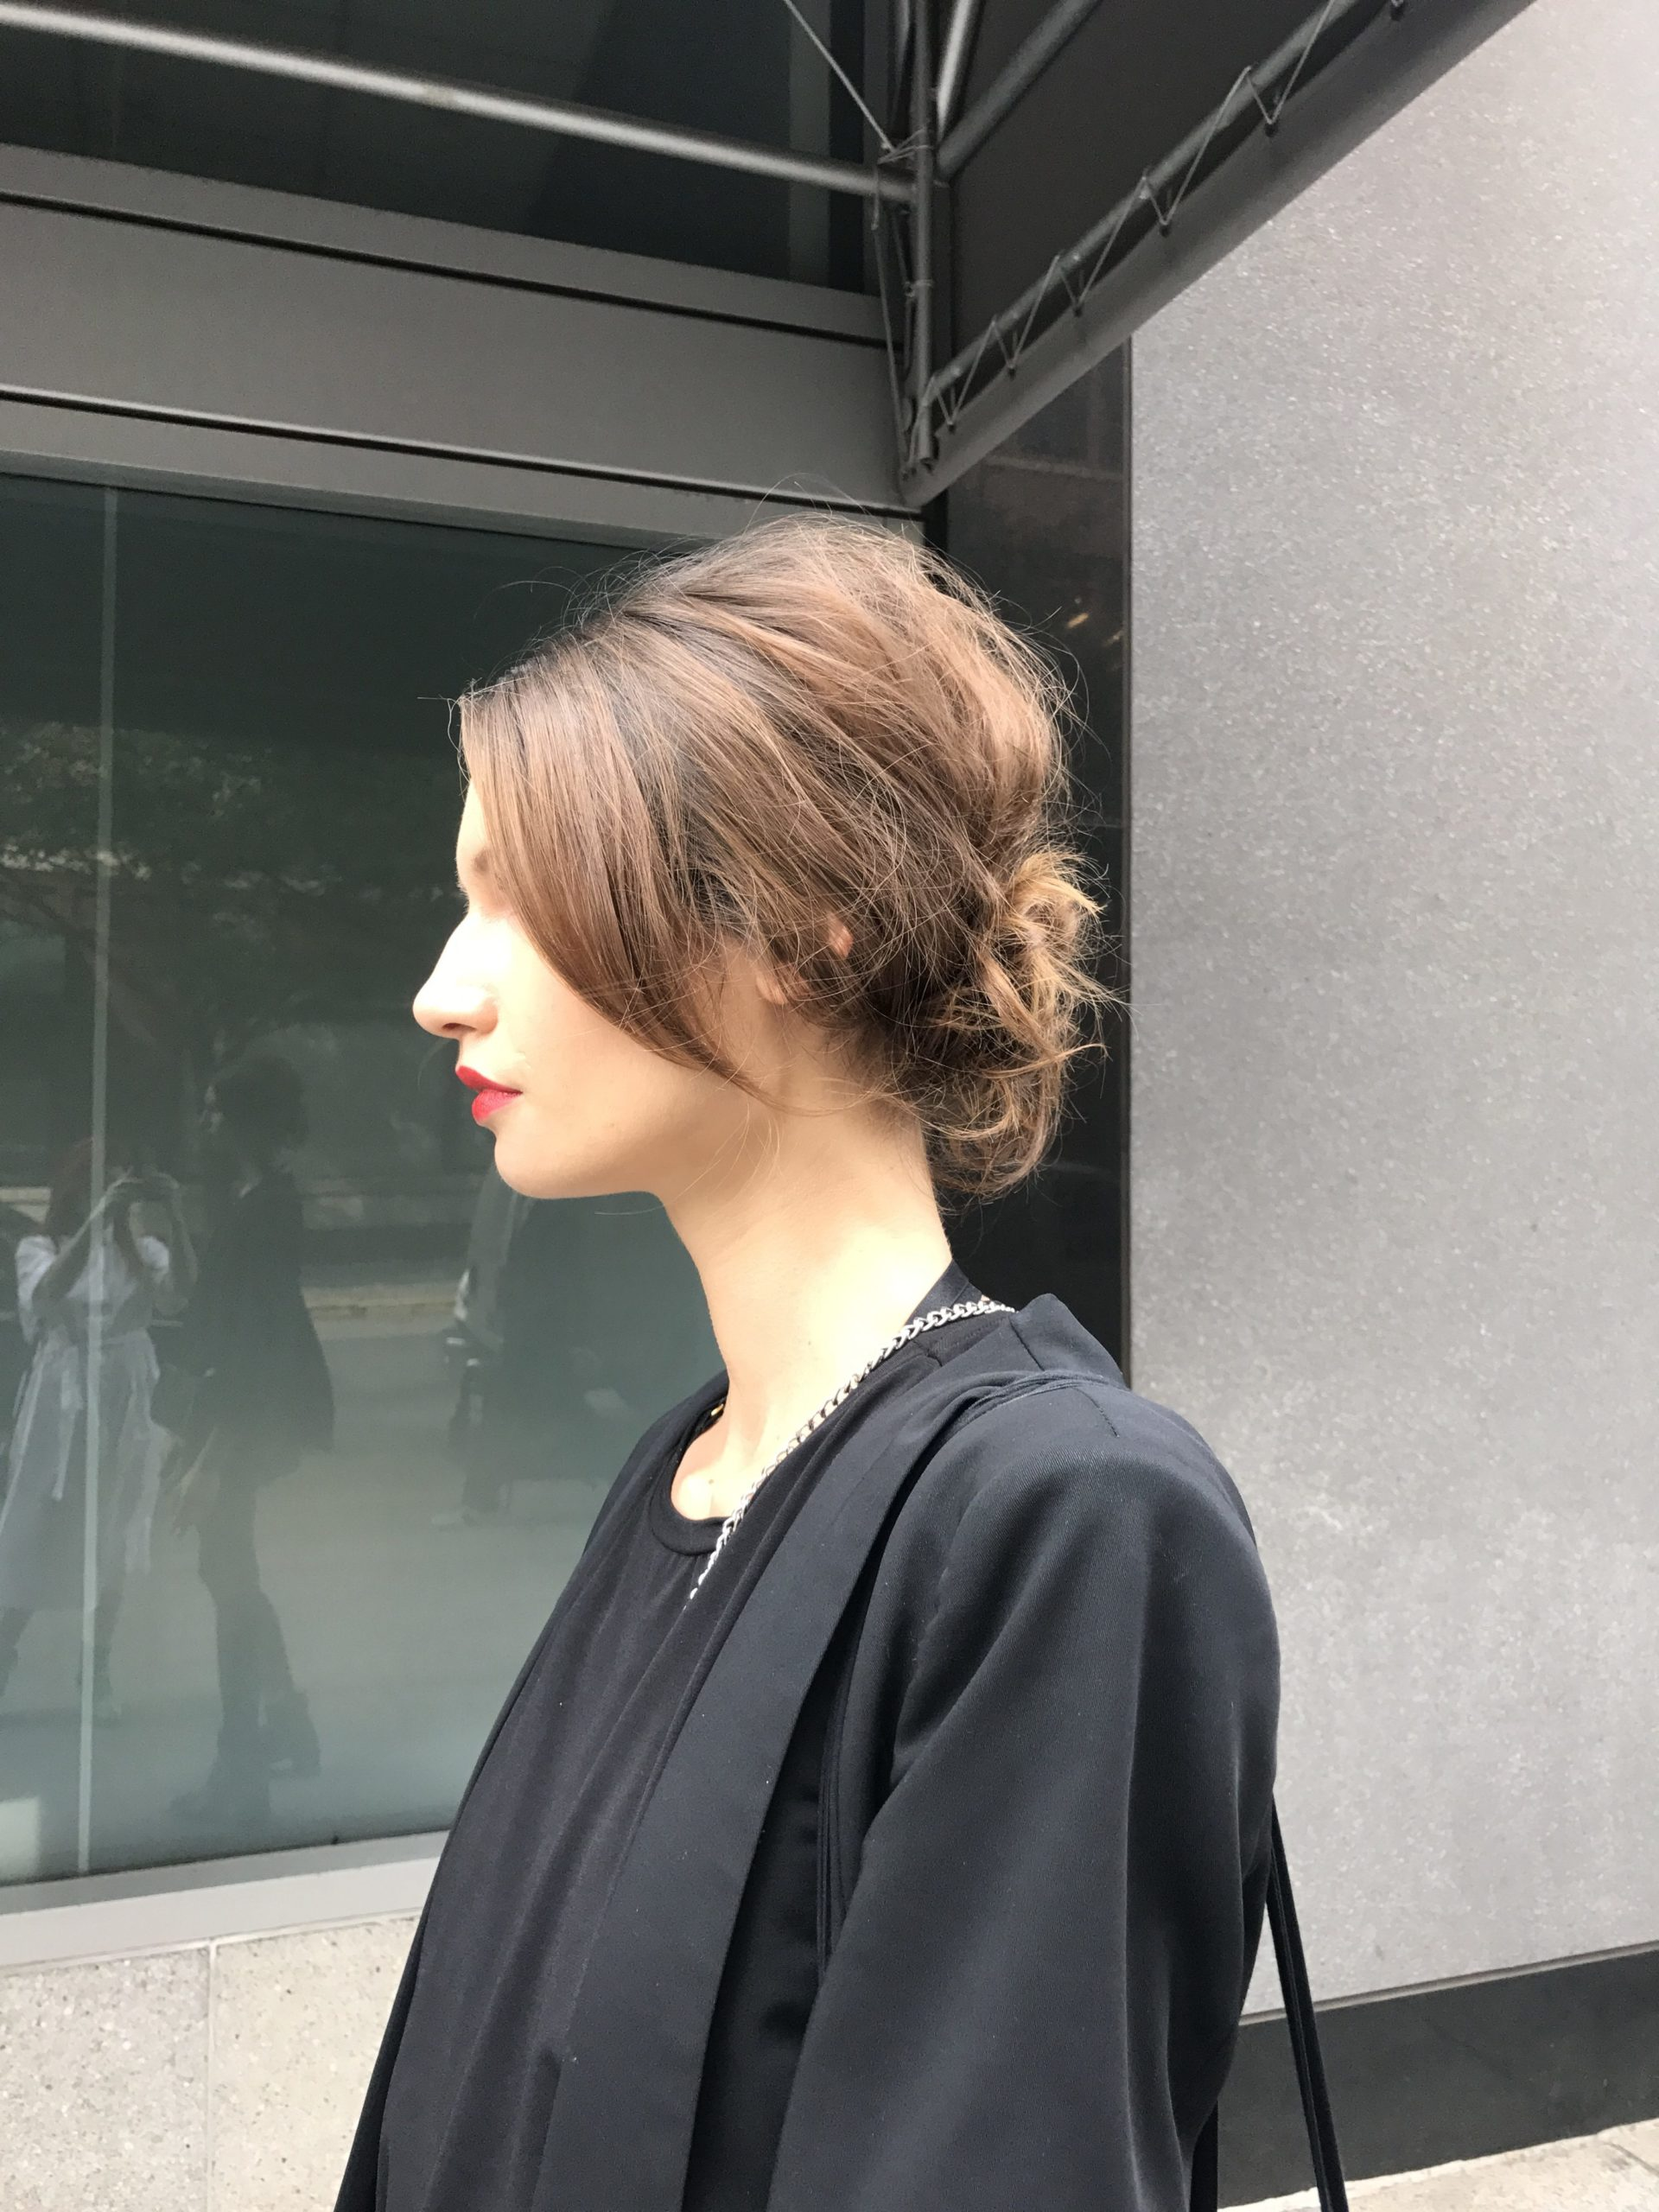 Best Street Style Hair model off duty up do